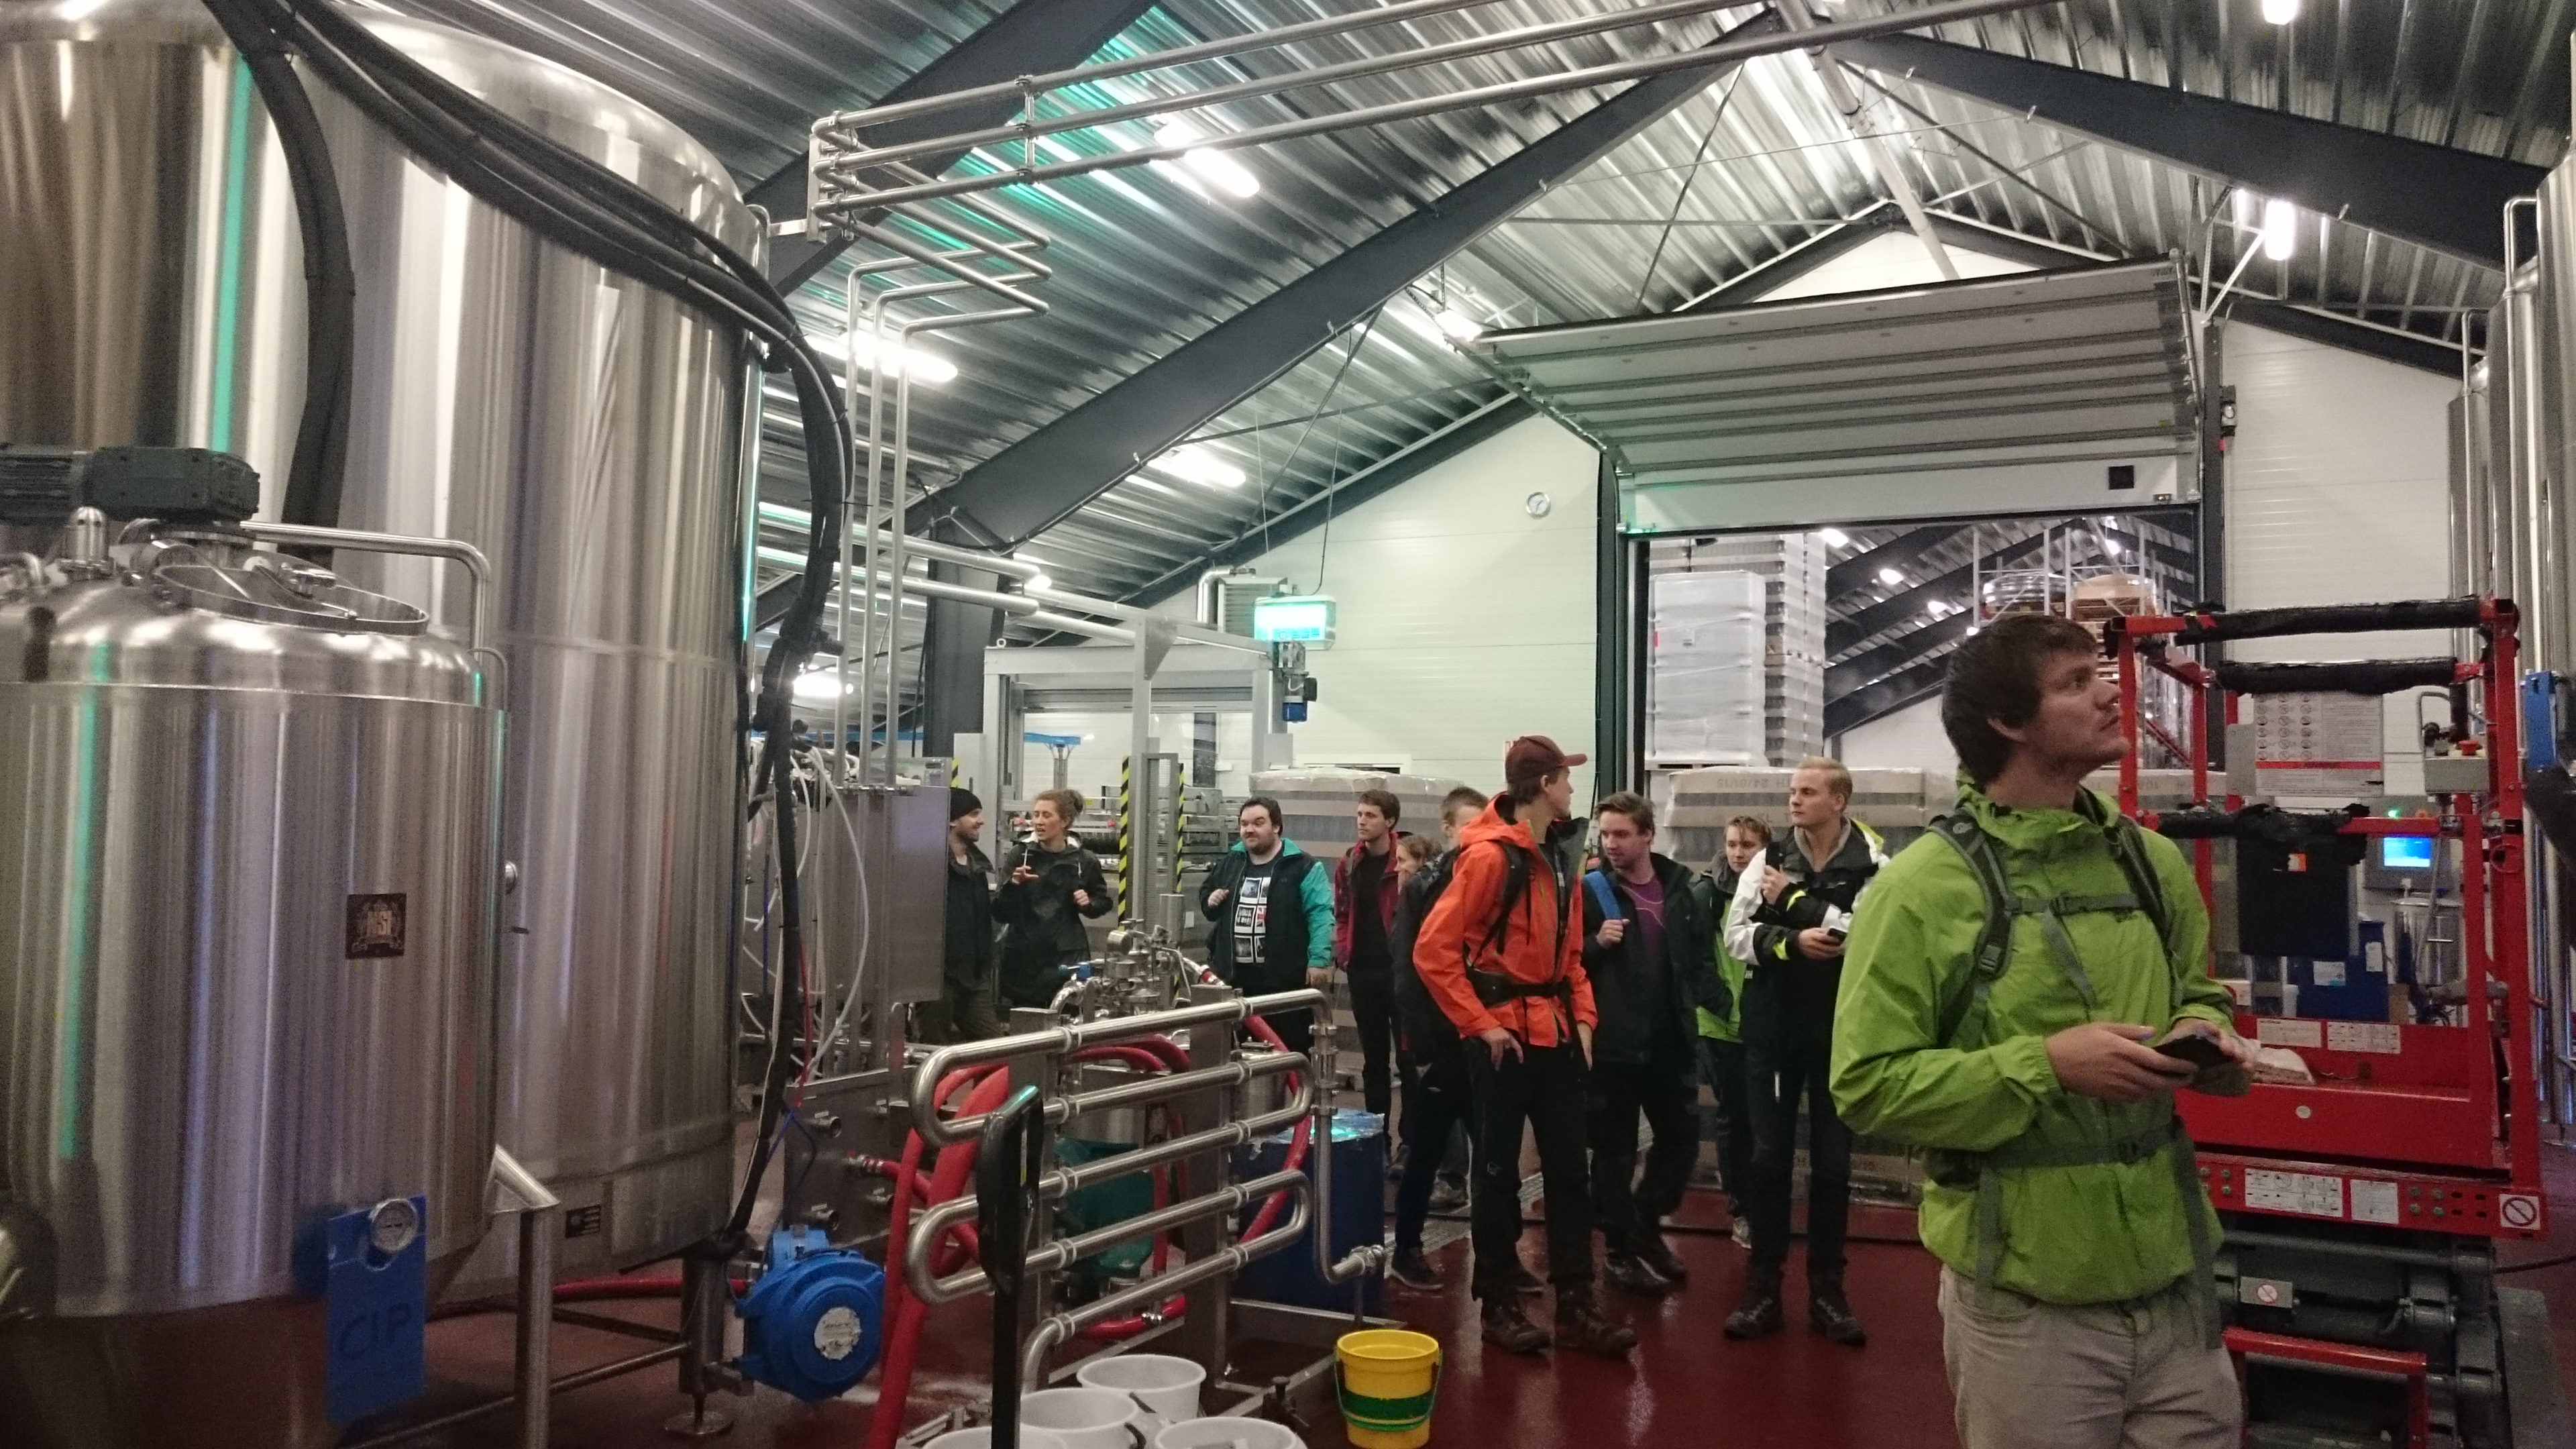 Students and staff walk around and admire the stainless steel design beads where the local Ægir brewery is producing its craft beer.